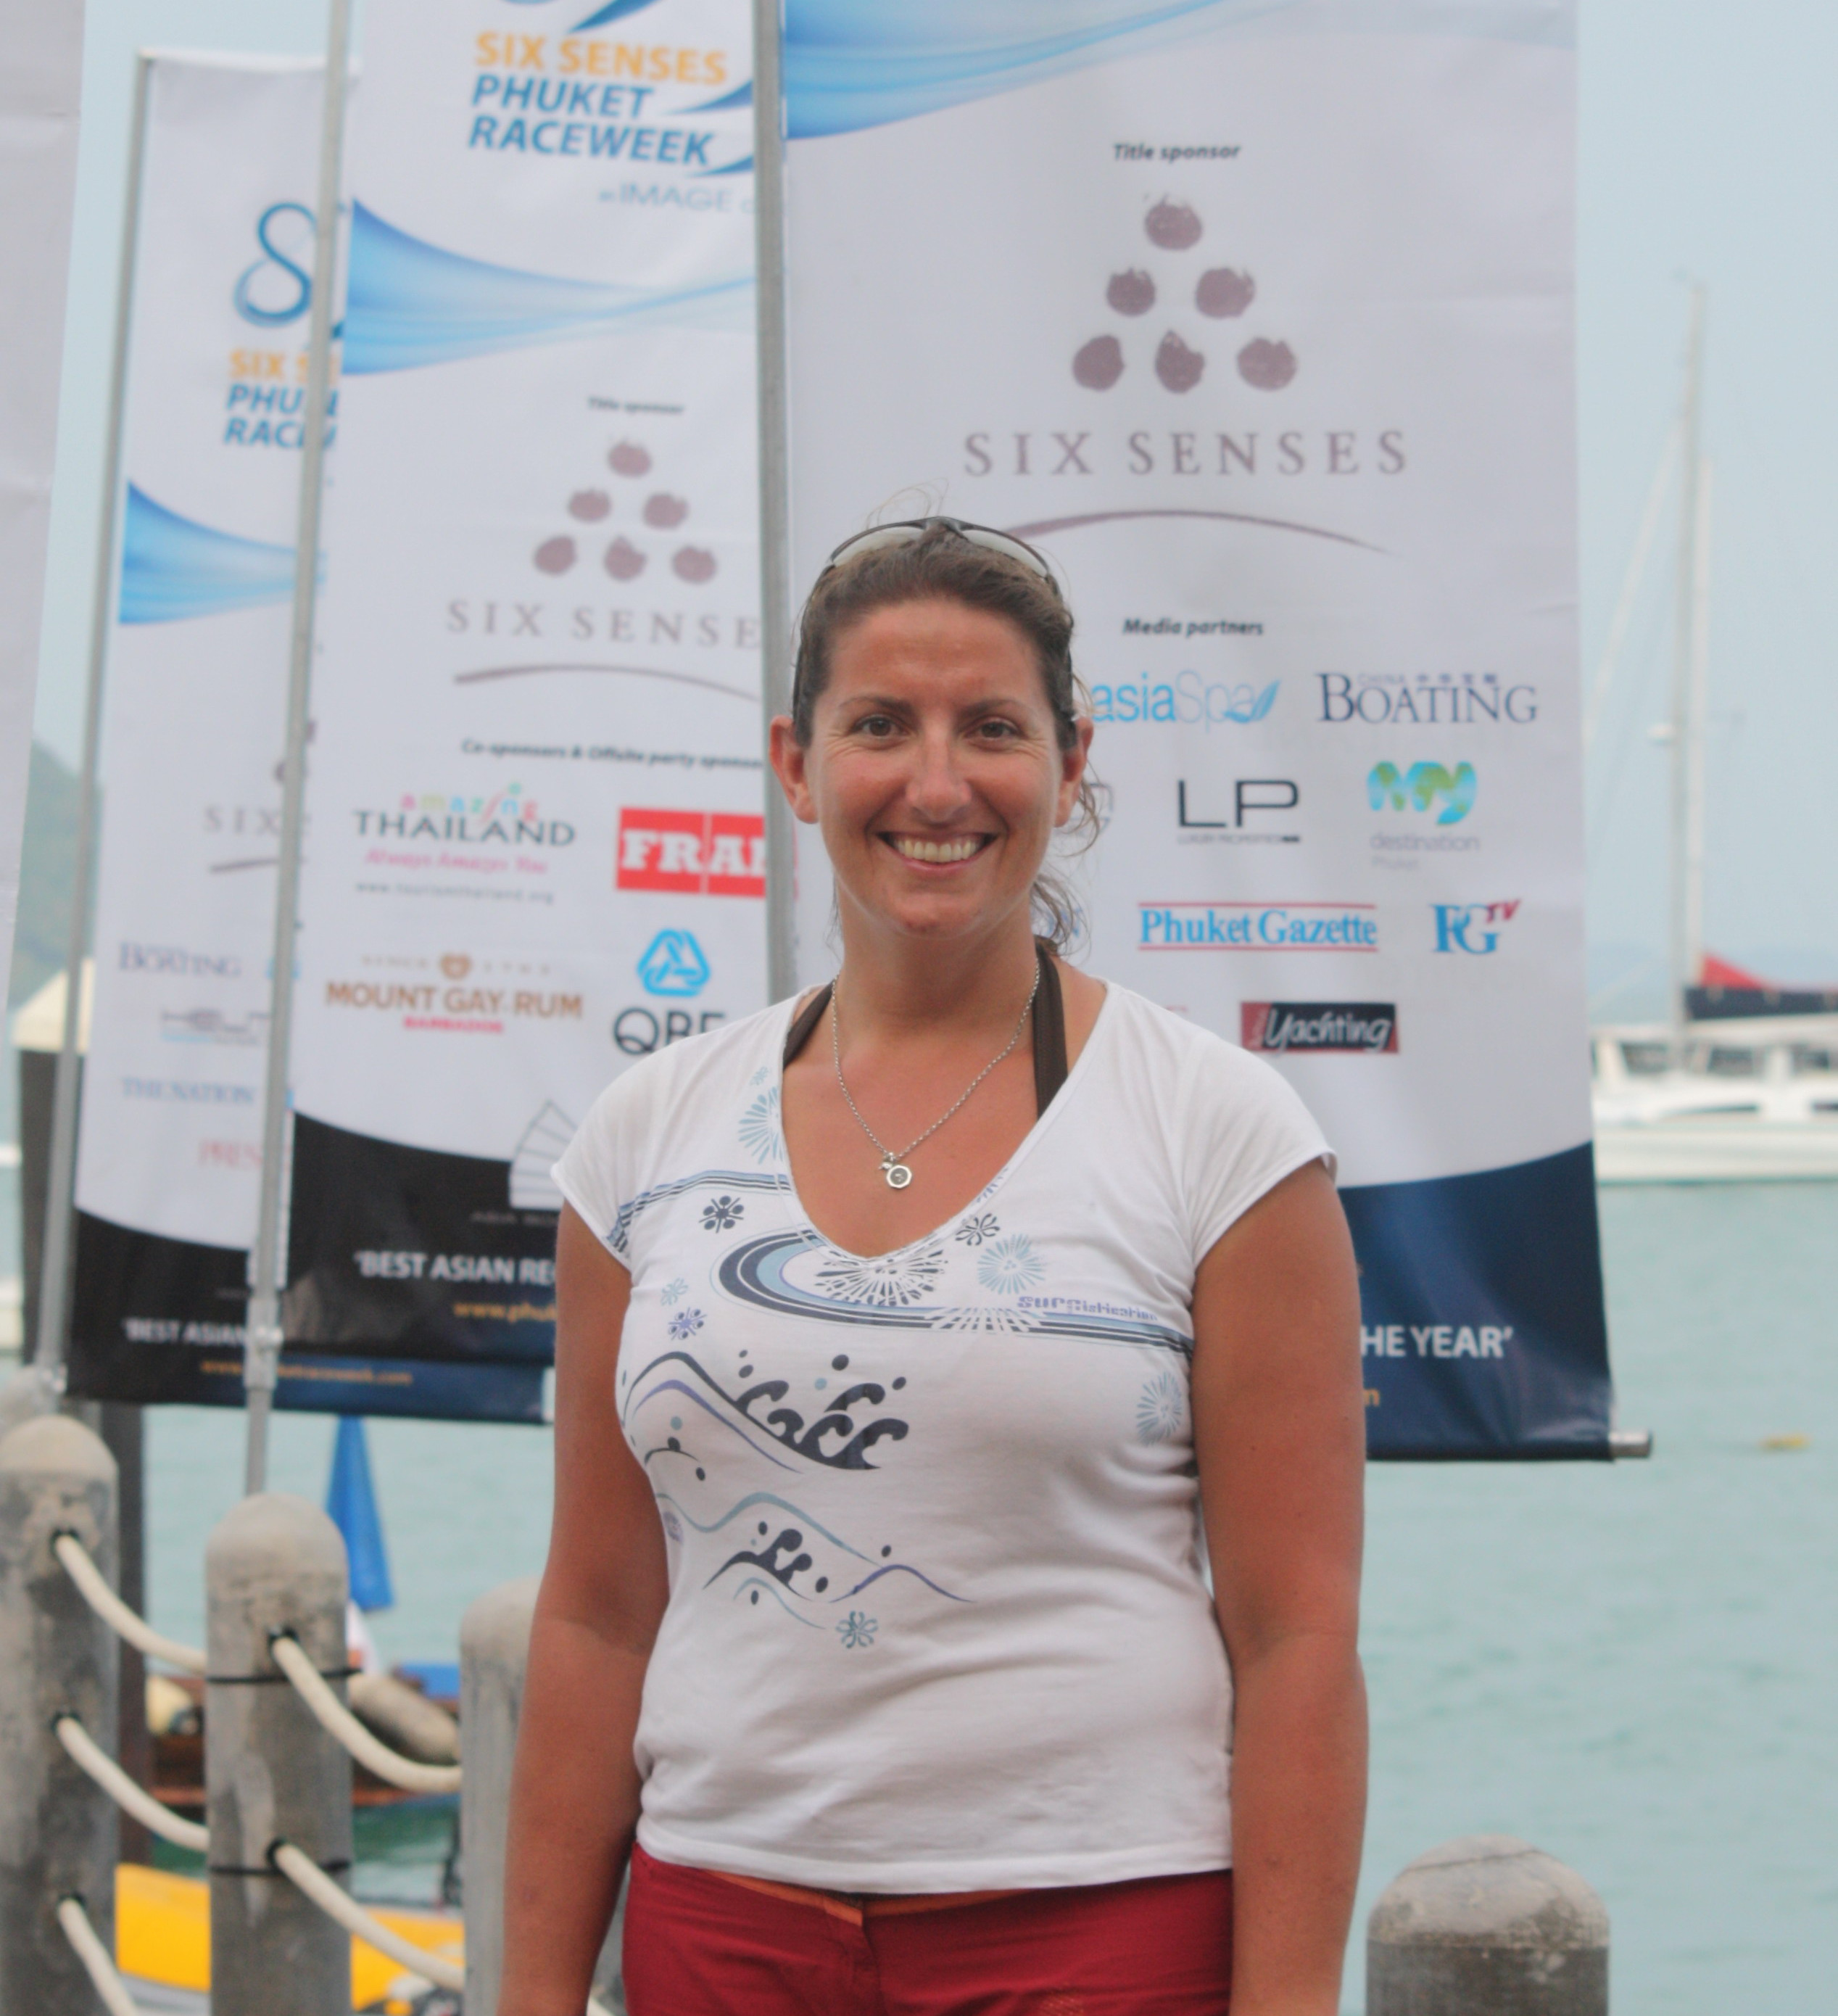 Phuket Race Week Ambassador